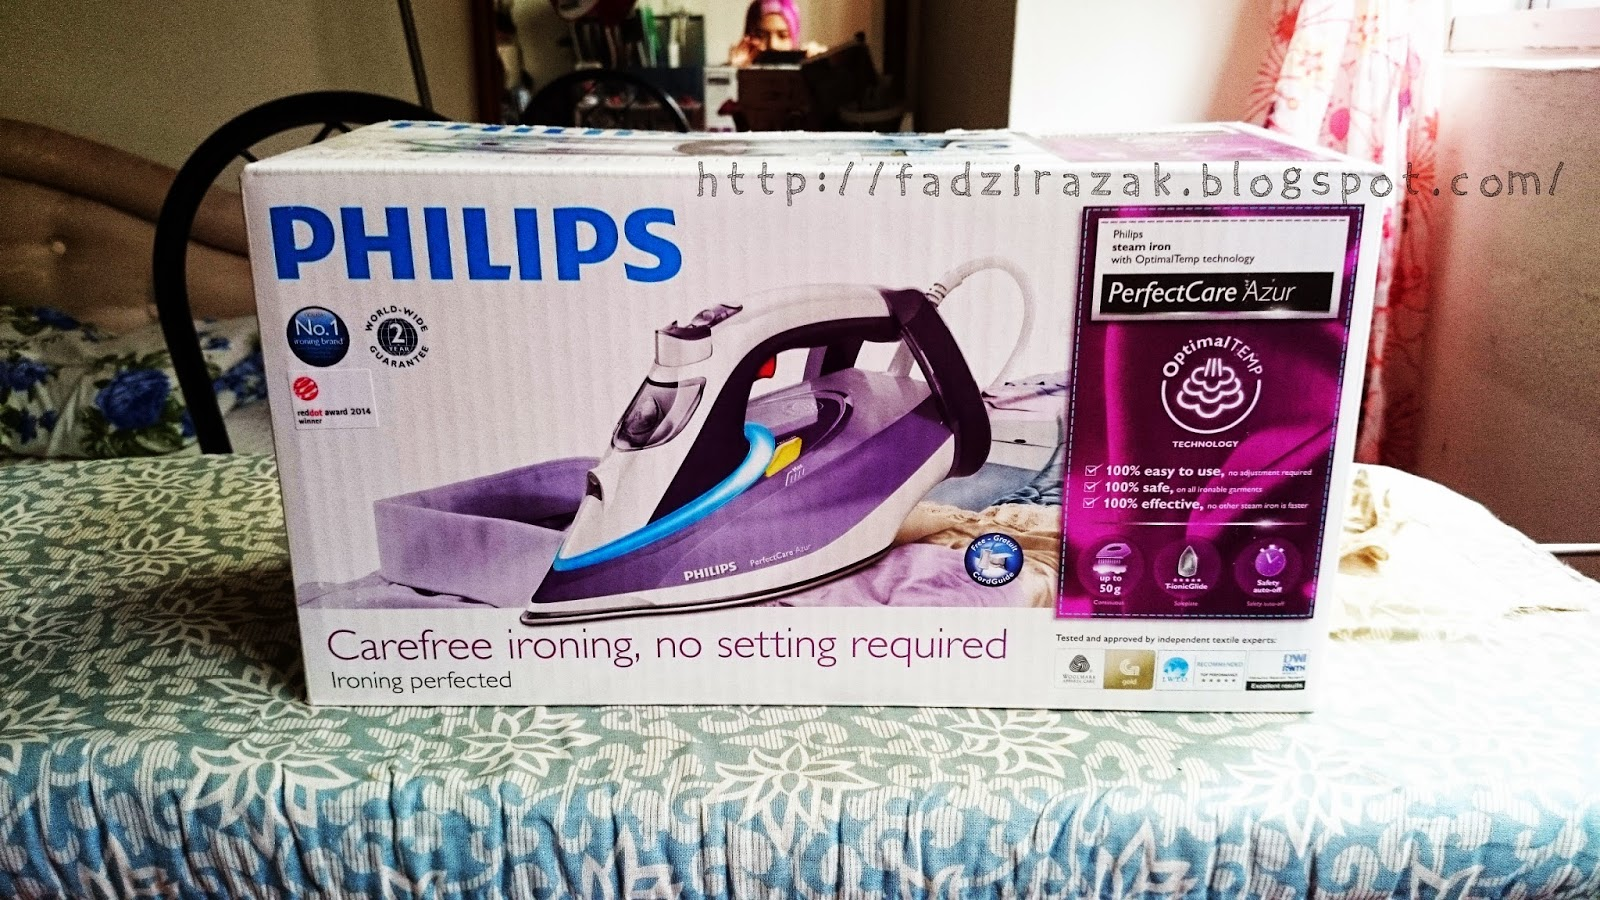 Phillips PerfectCare Azur